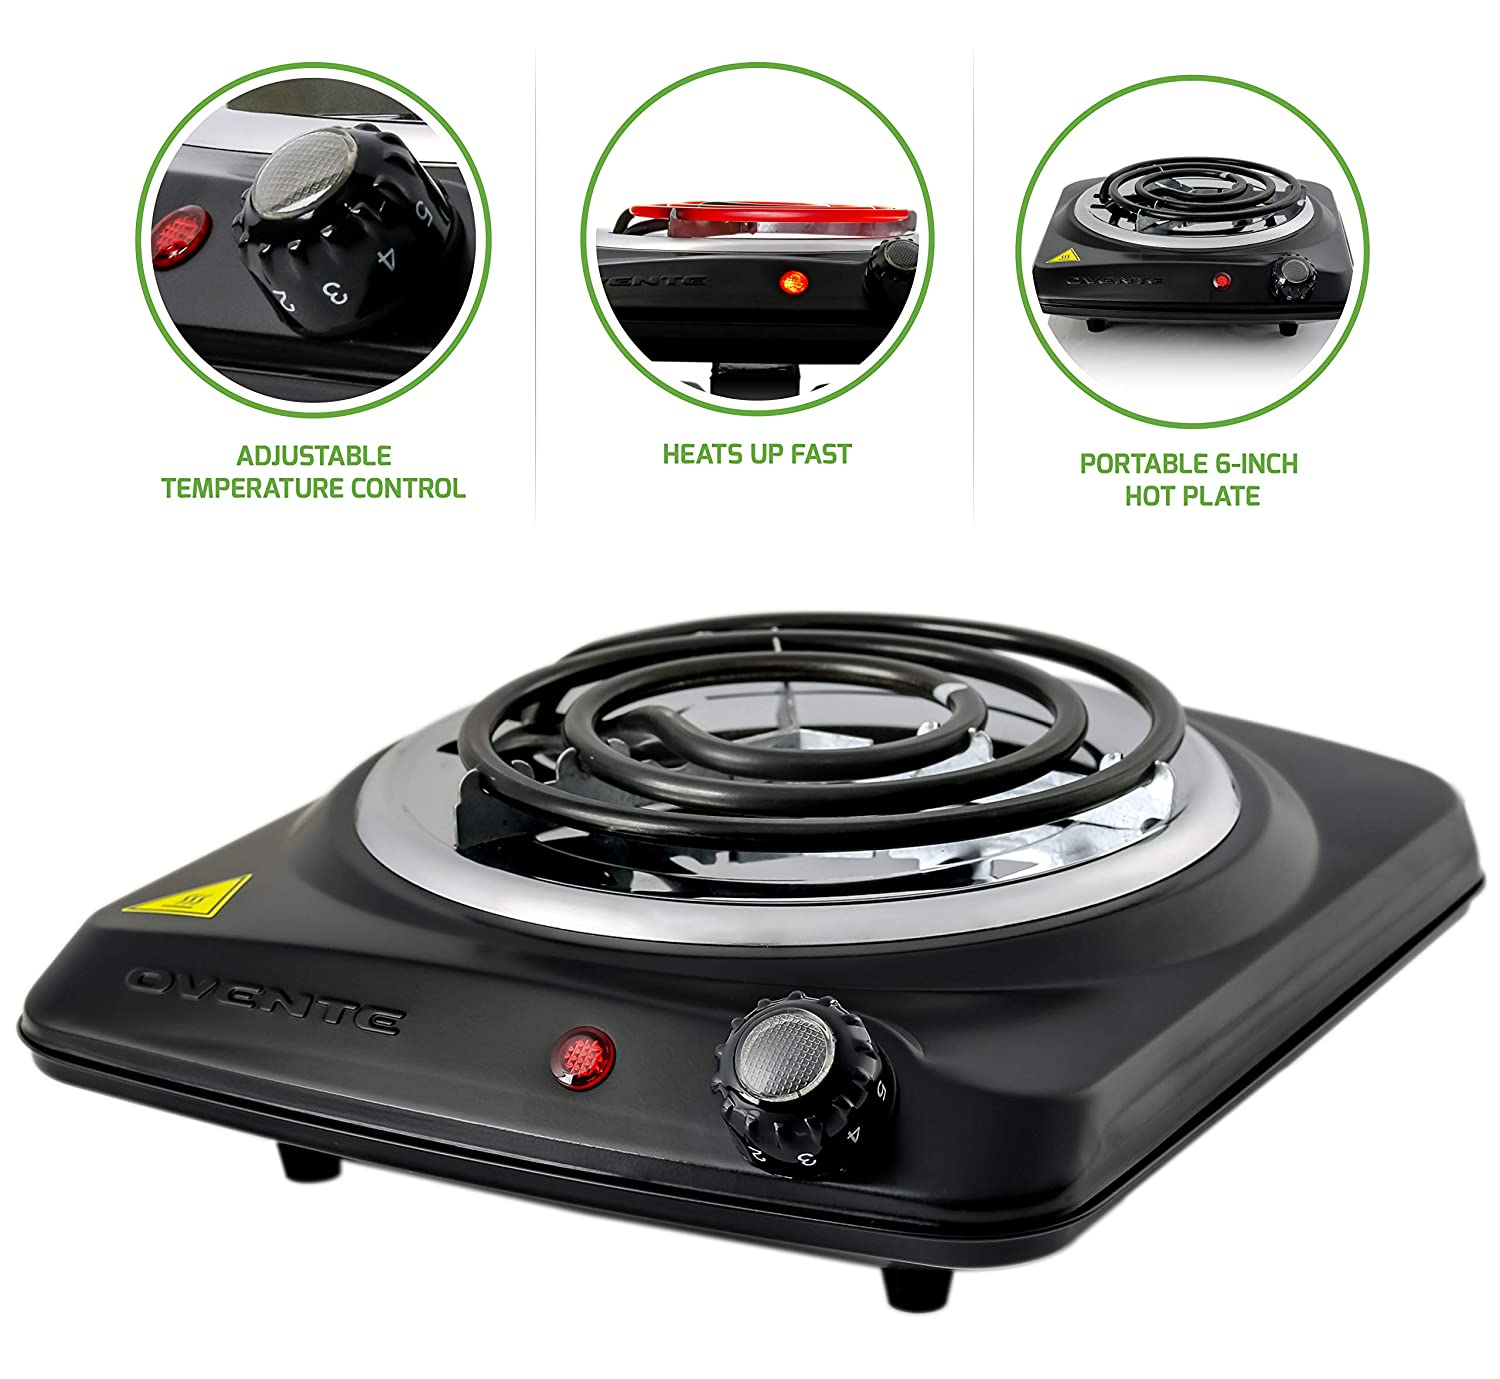 OVENTE Countertop Electric Single Coil Burner, 1000W (120V), 6-Inch Plate, Adjustable Temperature Control, Metal Housing, Black (BGC101B)